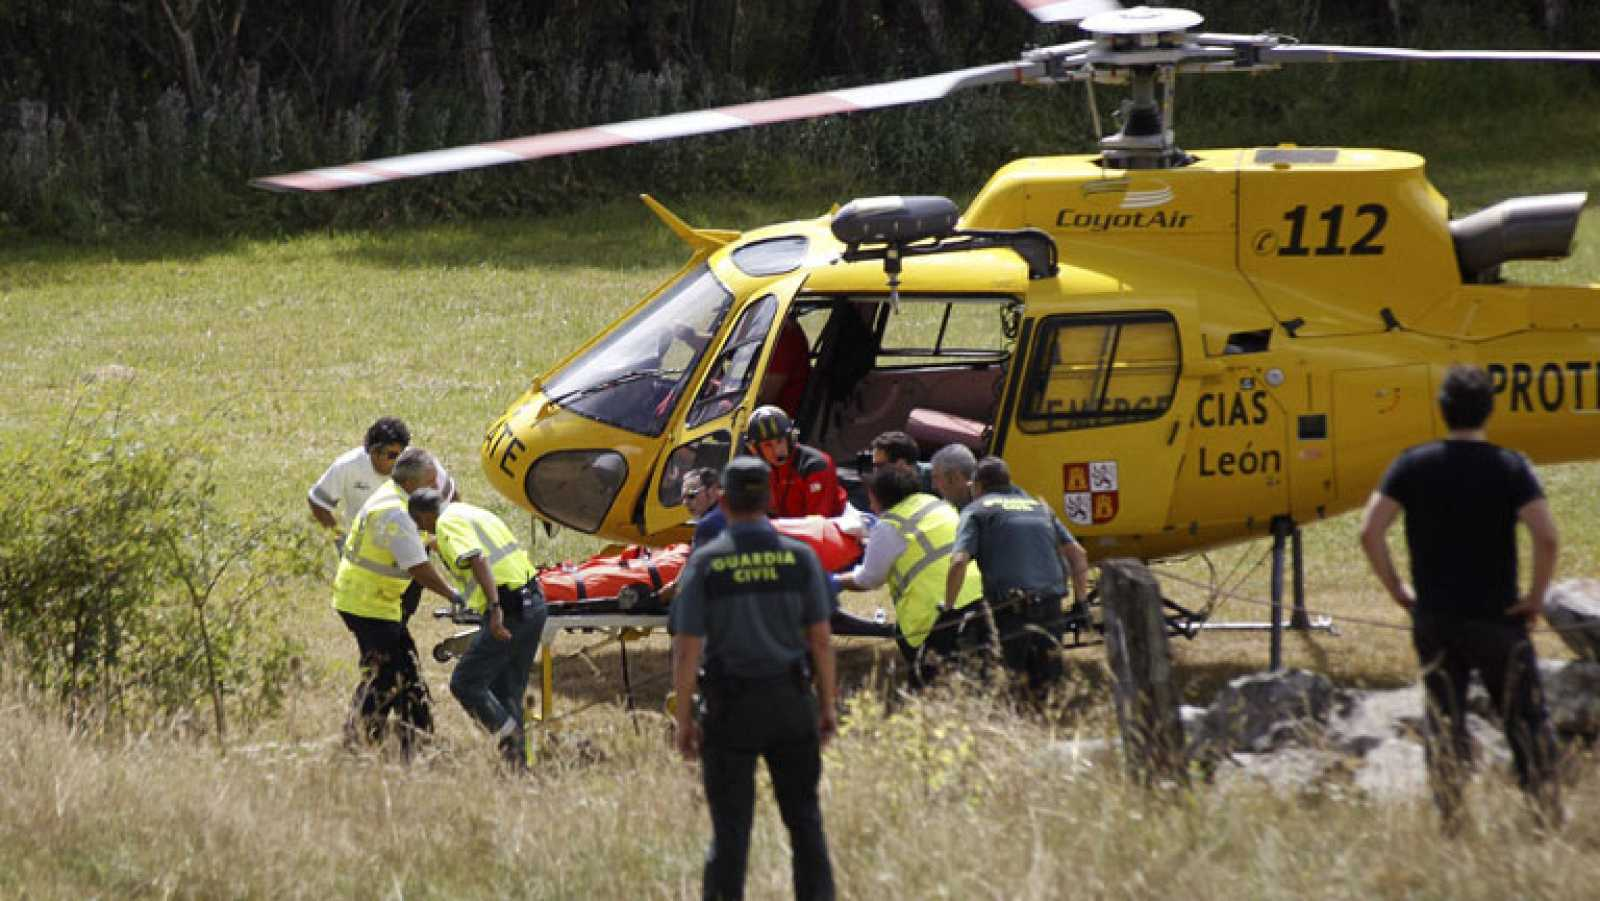 Mueren tres guardias civiles en un accidente de helicóptero